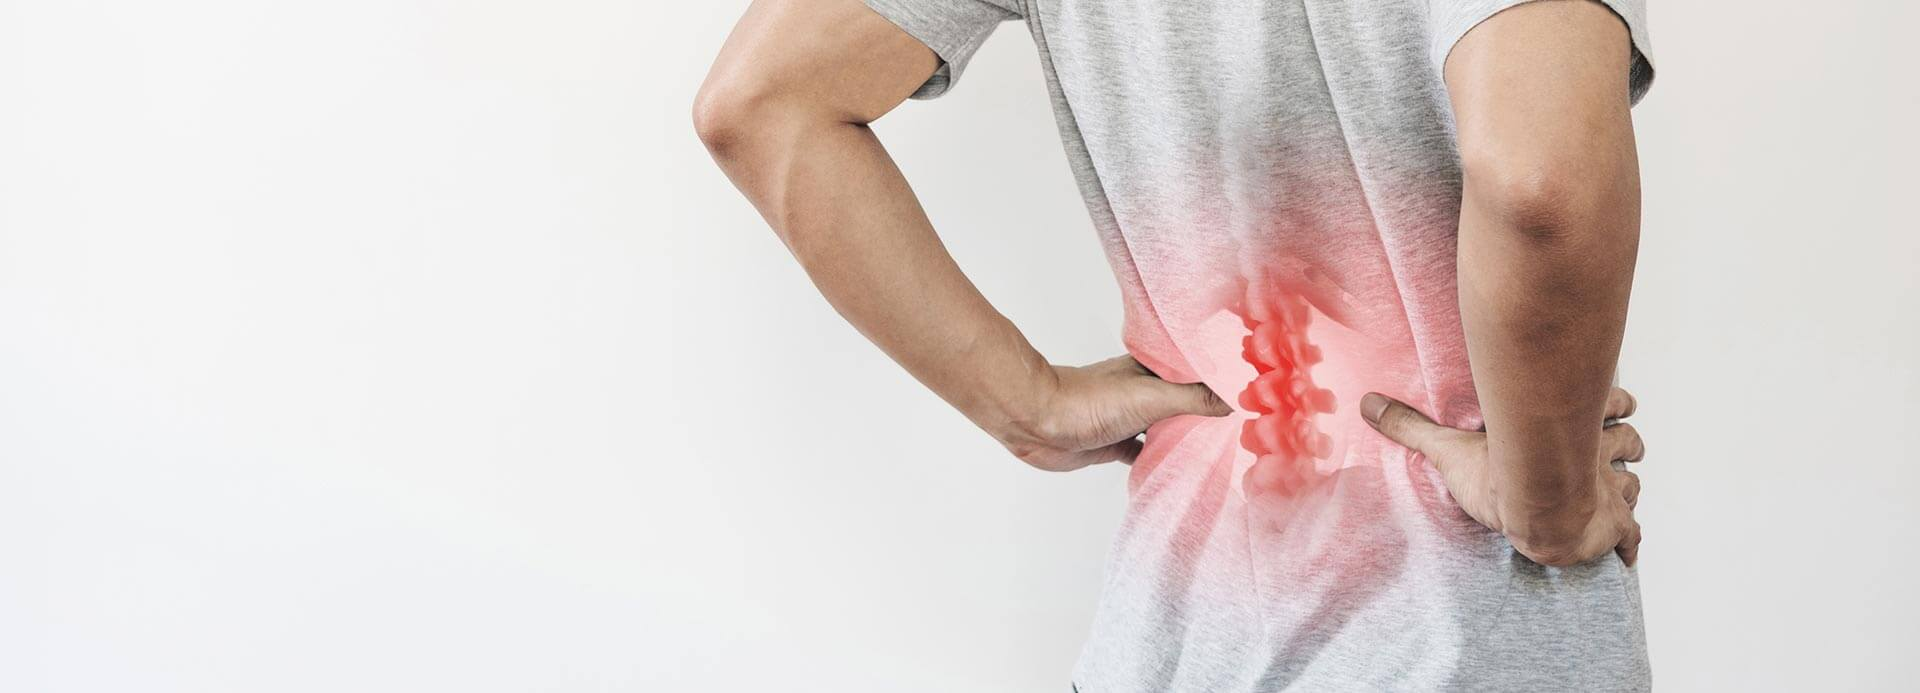 spine injury The Law office of John Vermon Moore